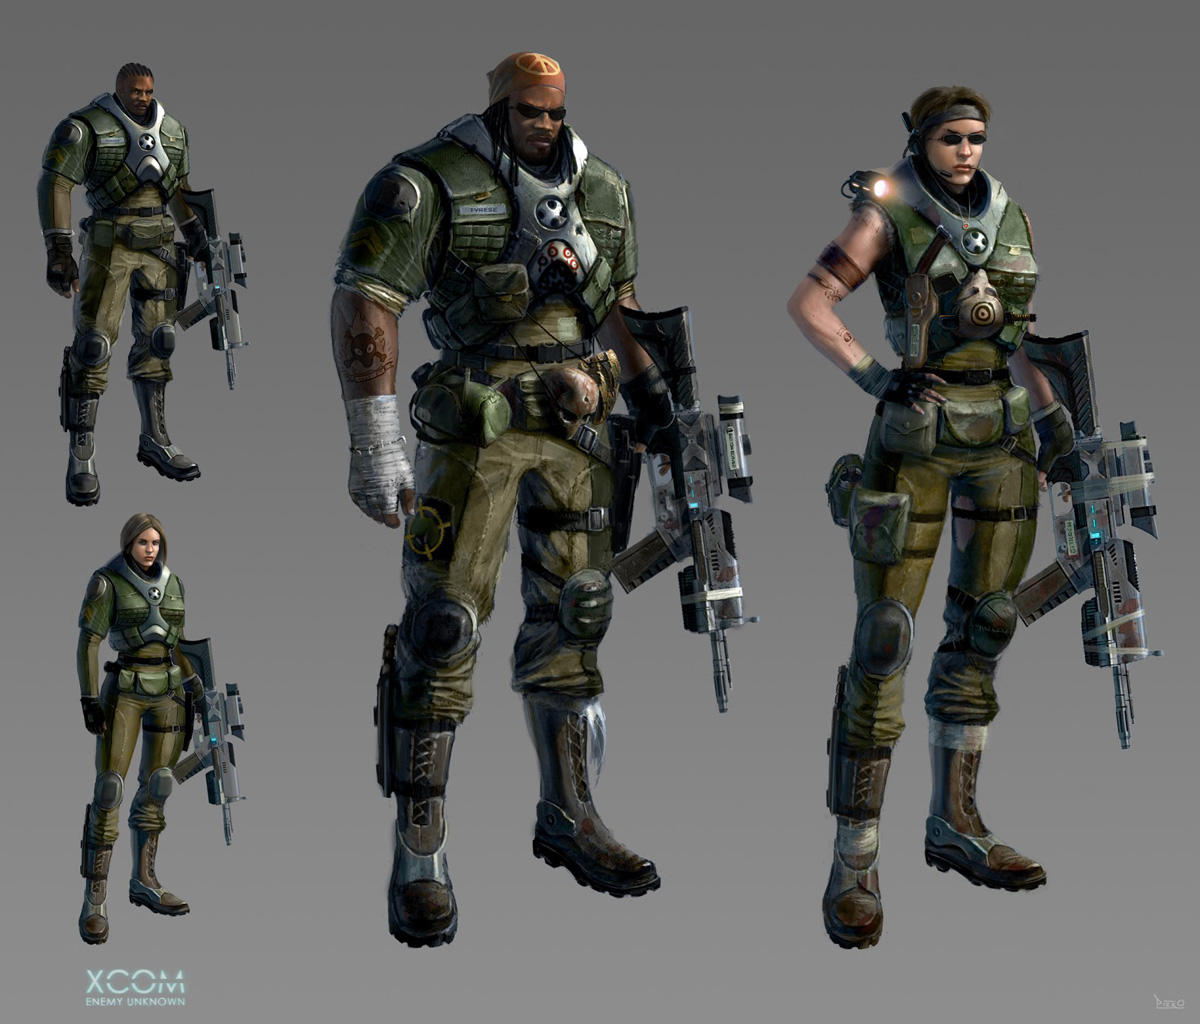 XCOM-Enemy_Unknown_Piero_Macgowan_13b.jpg